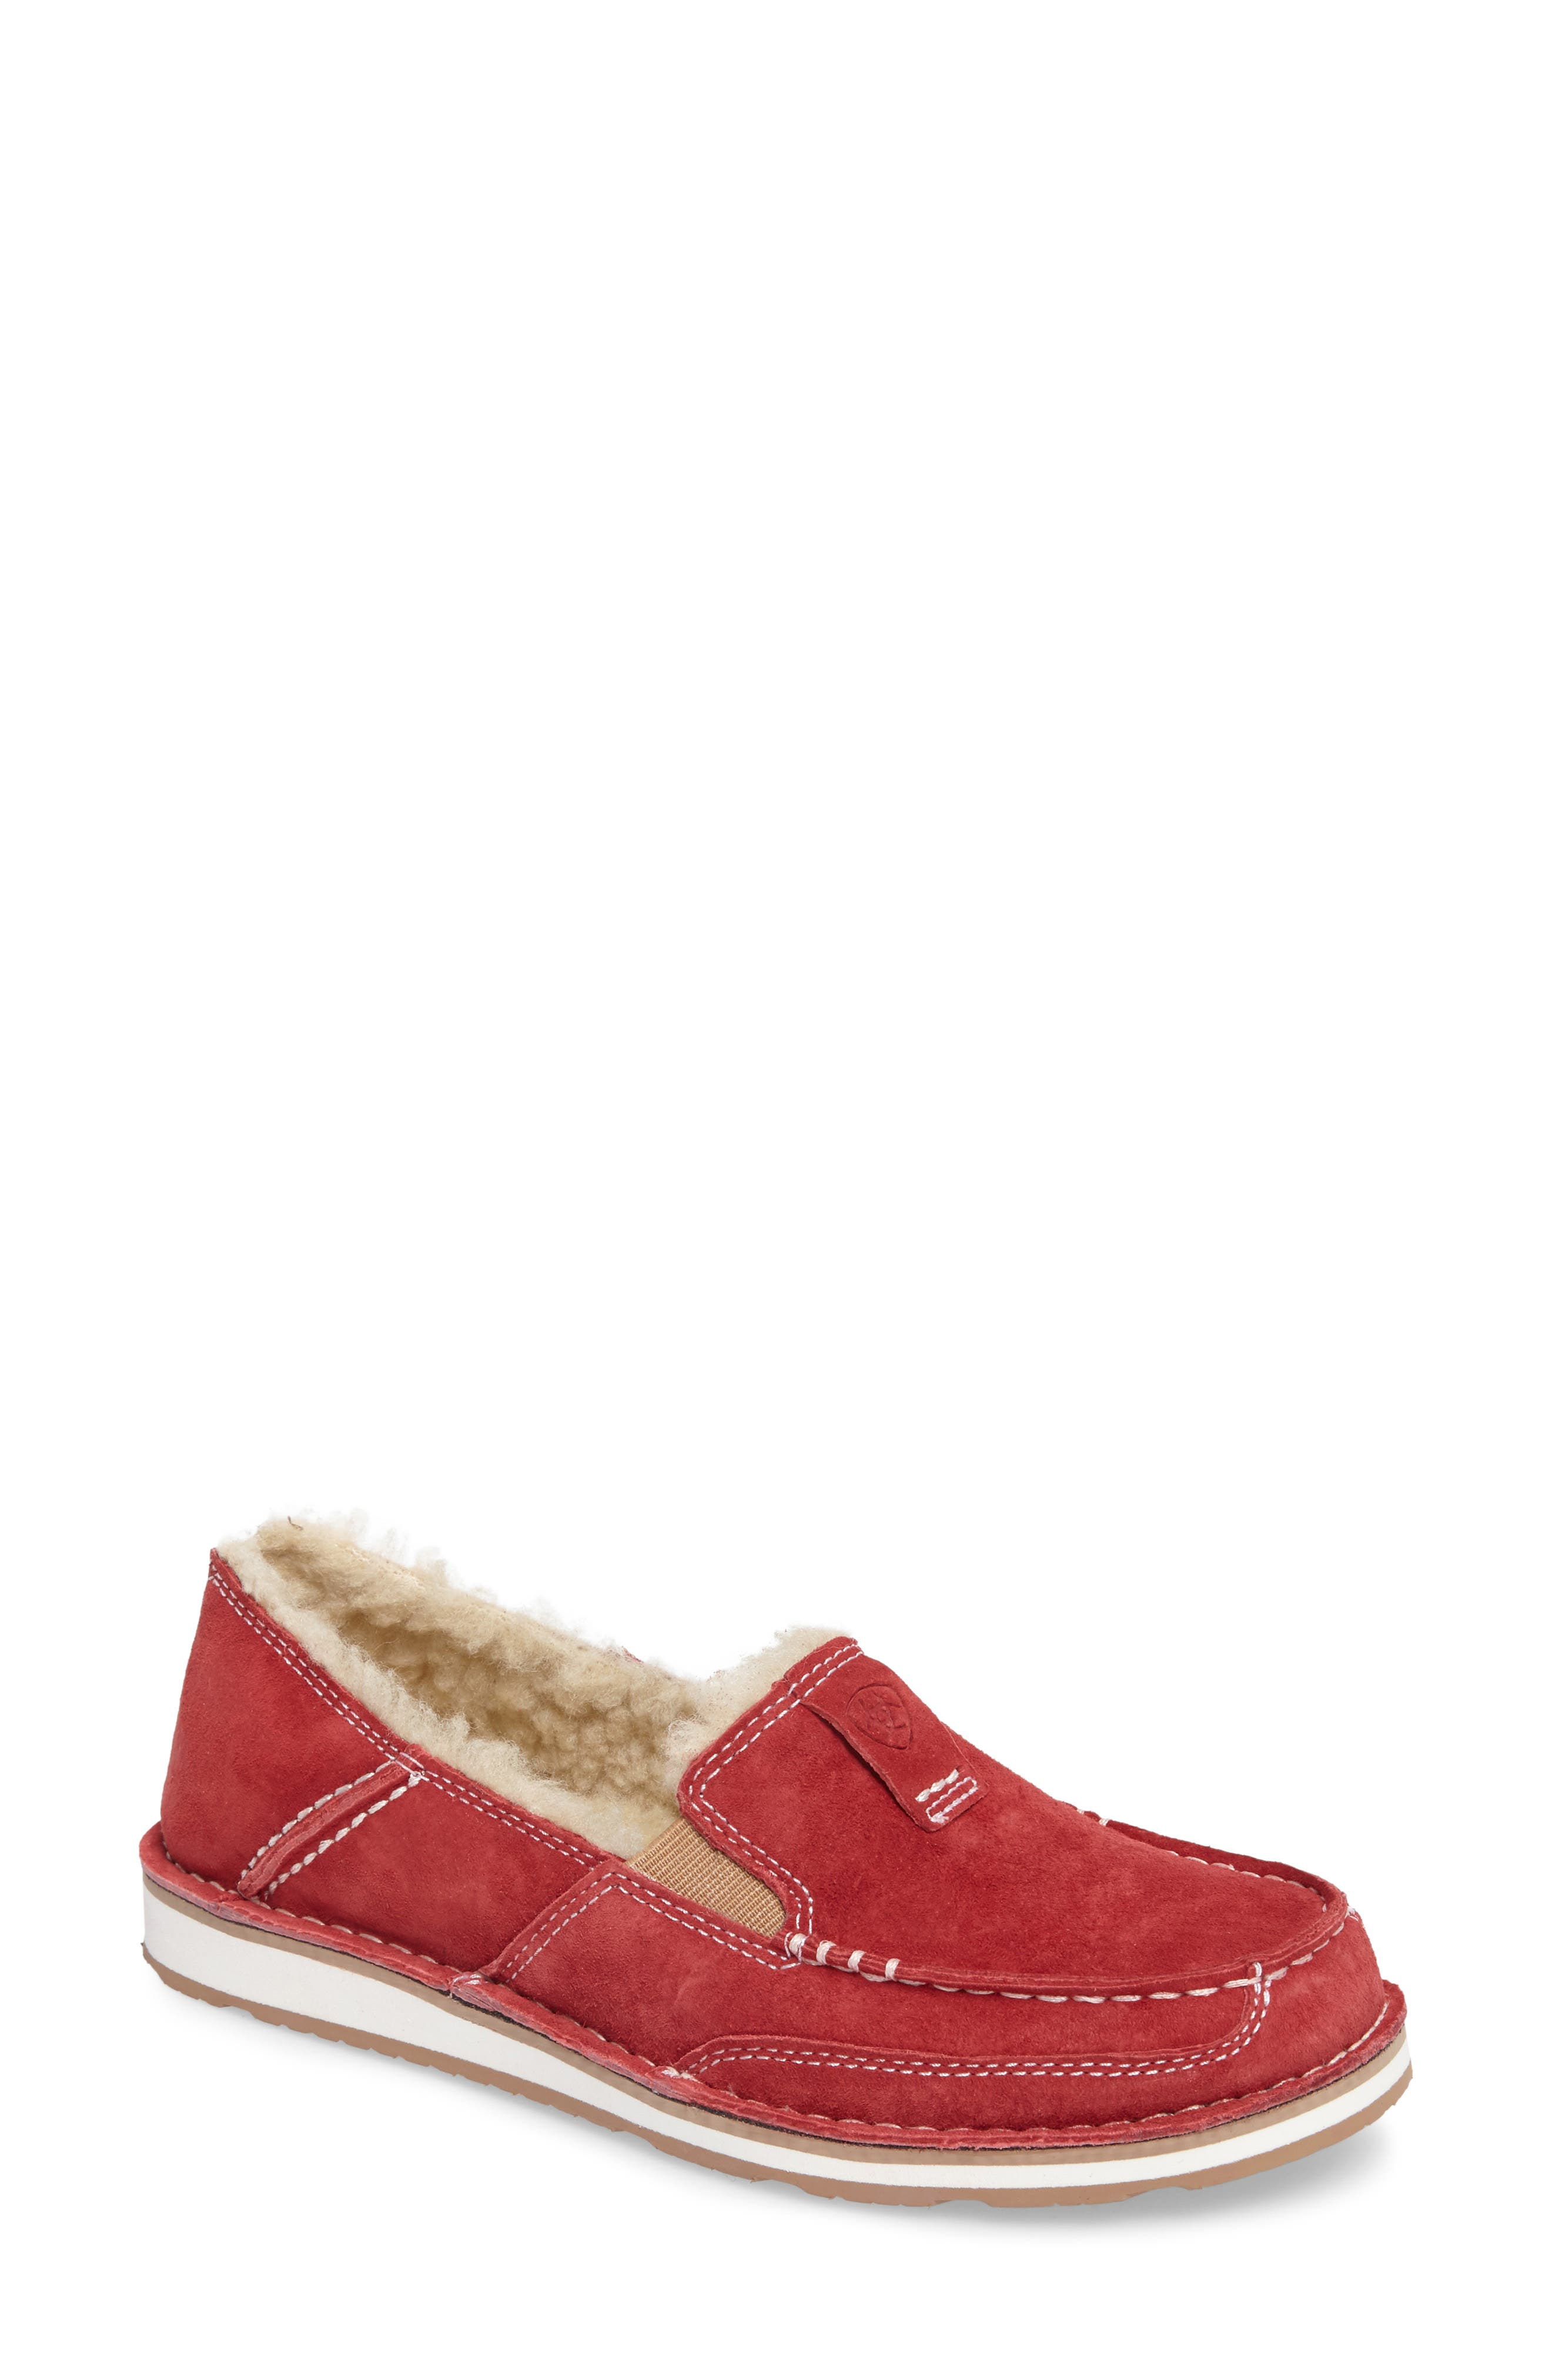 Cruiser Slip-On Loafer With Faux Shearling Lining, Fleece Strawberry Suede